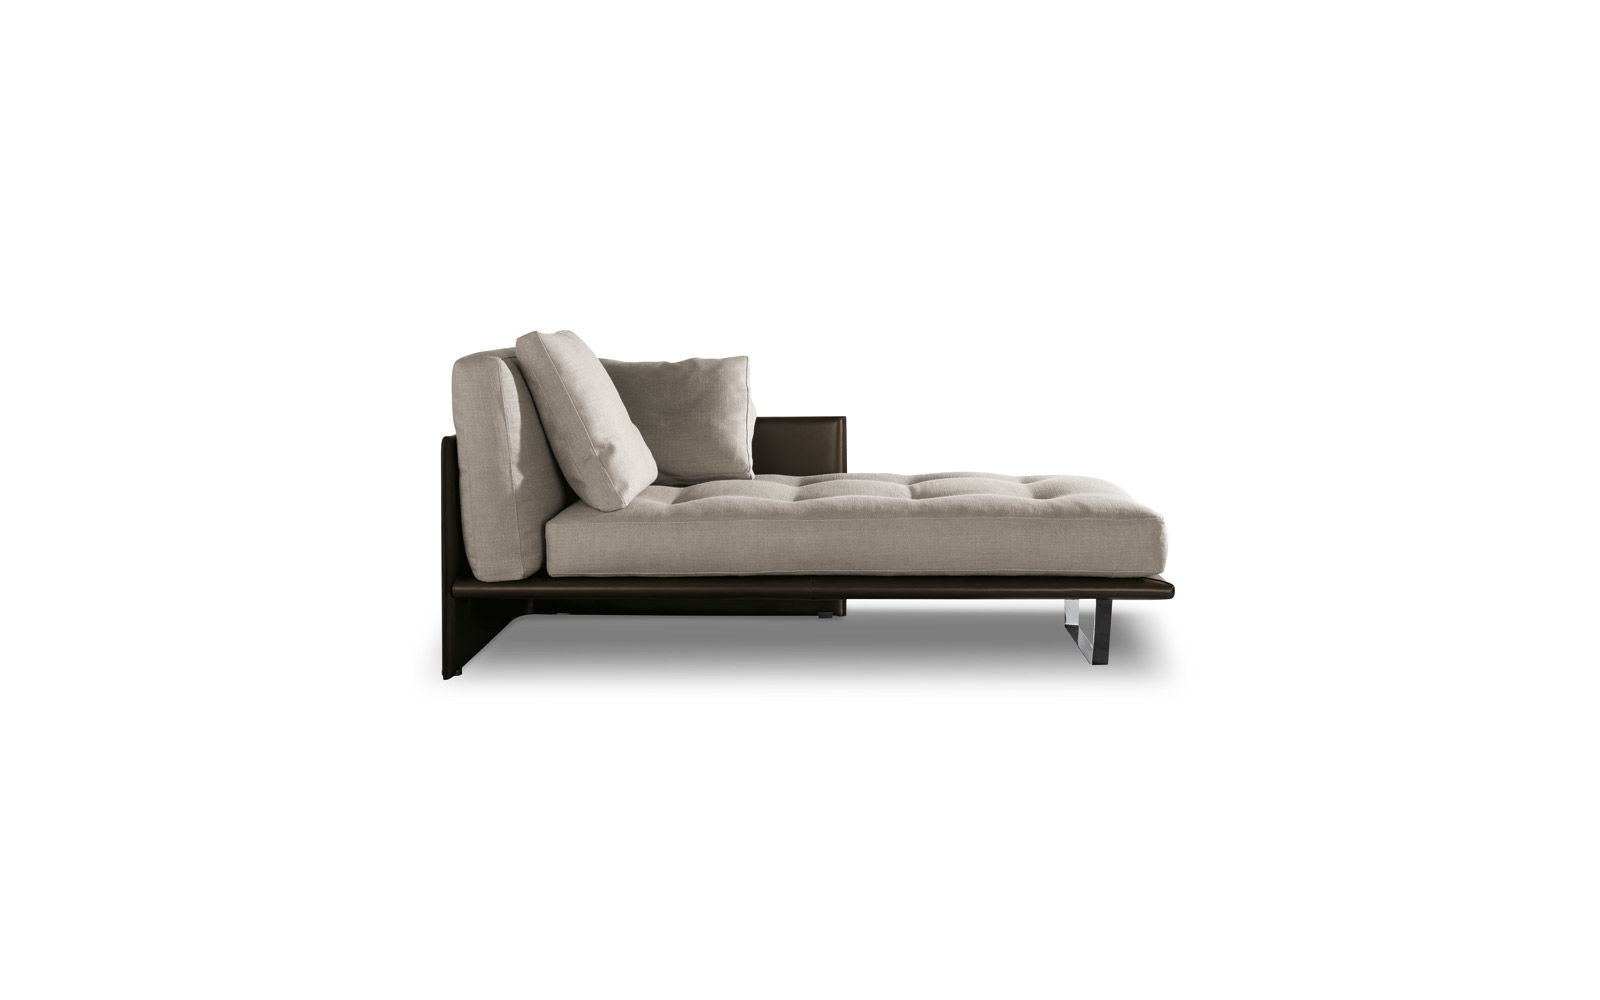 luggage chaise longue